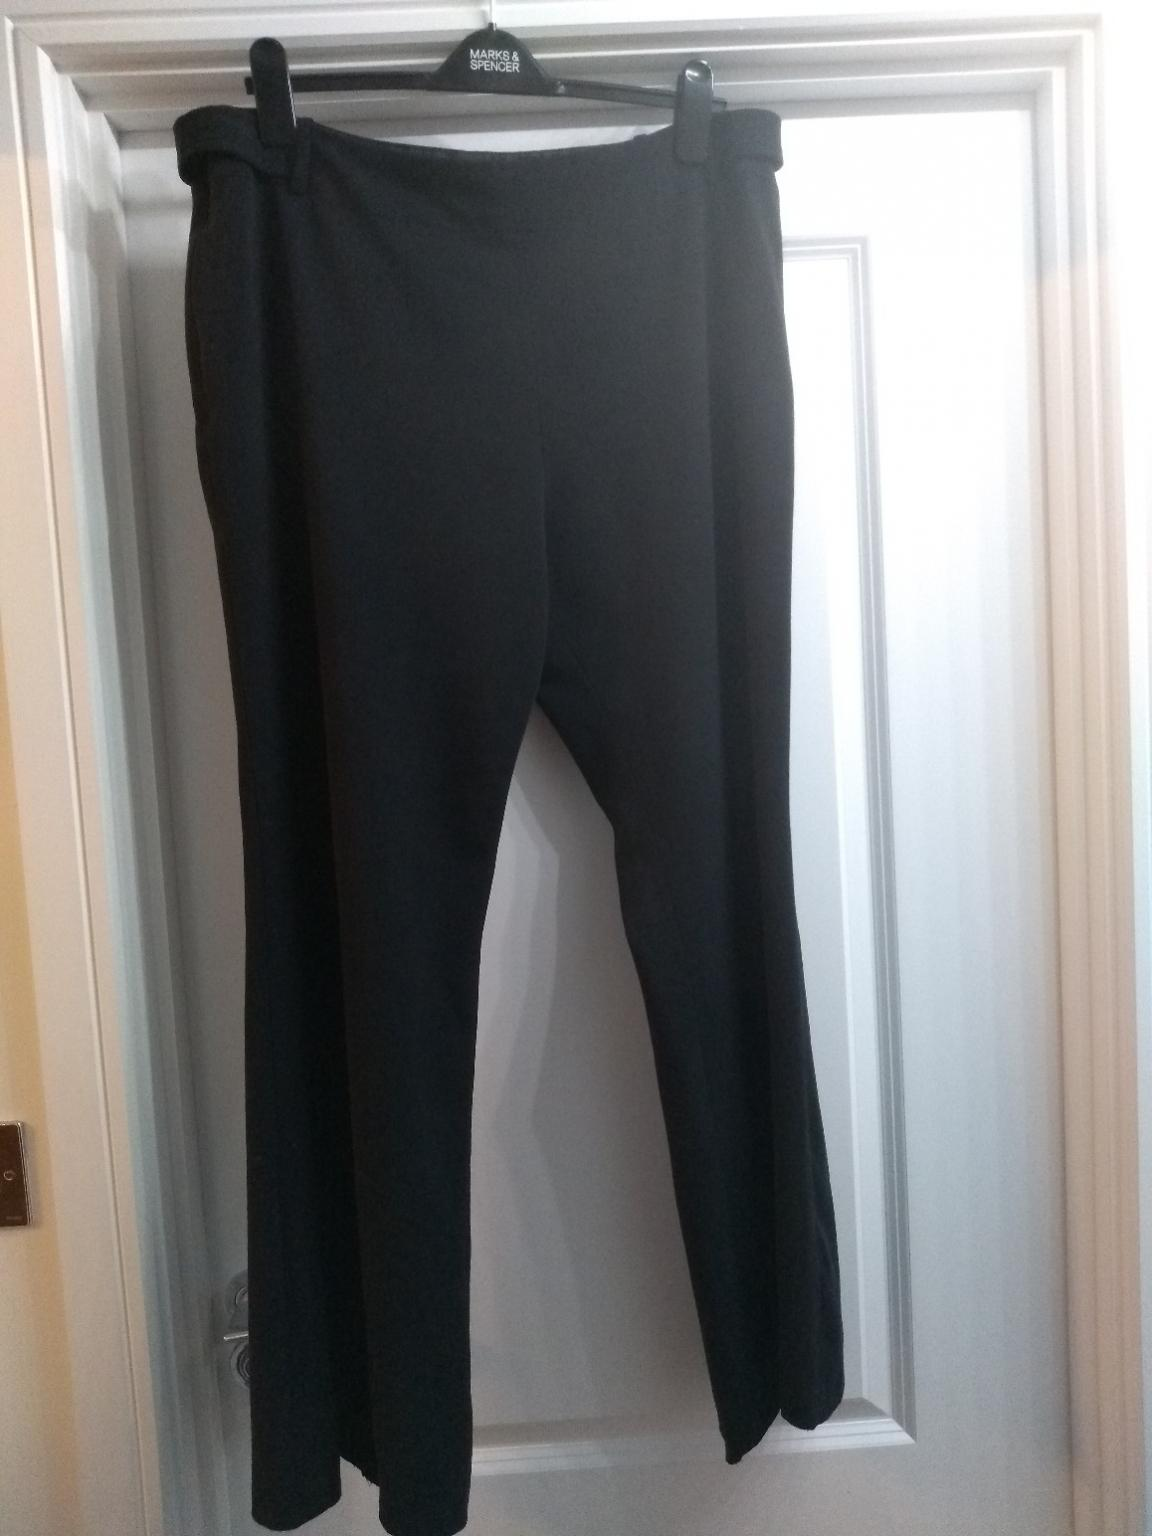 d4231c2cc901d MATERNITY TROUSERS SIZE 18 BLACK in Chorley for £5.00 for sale - Shpock